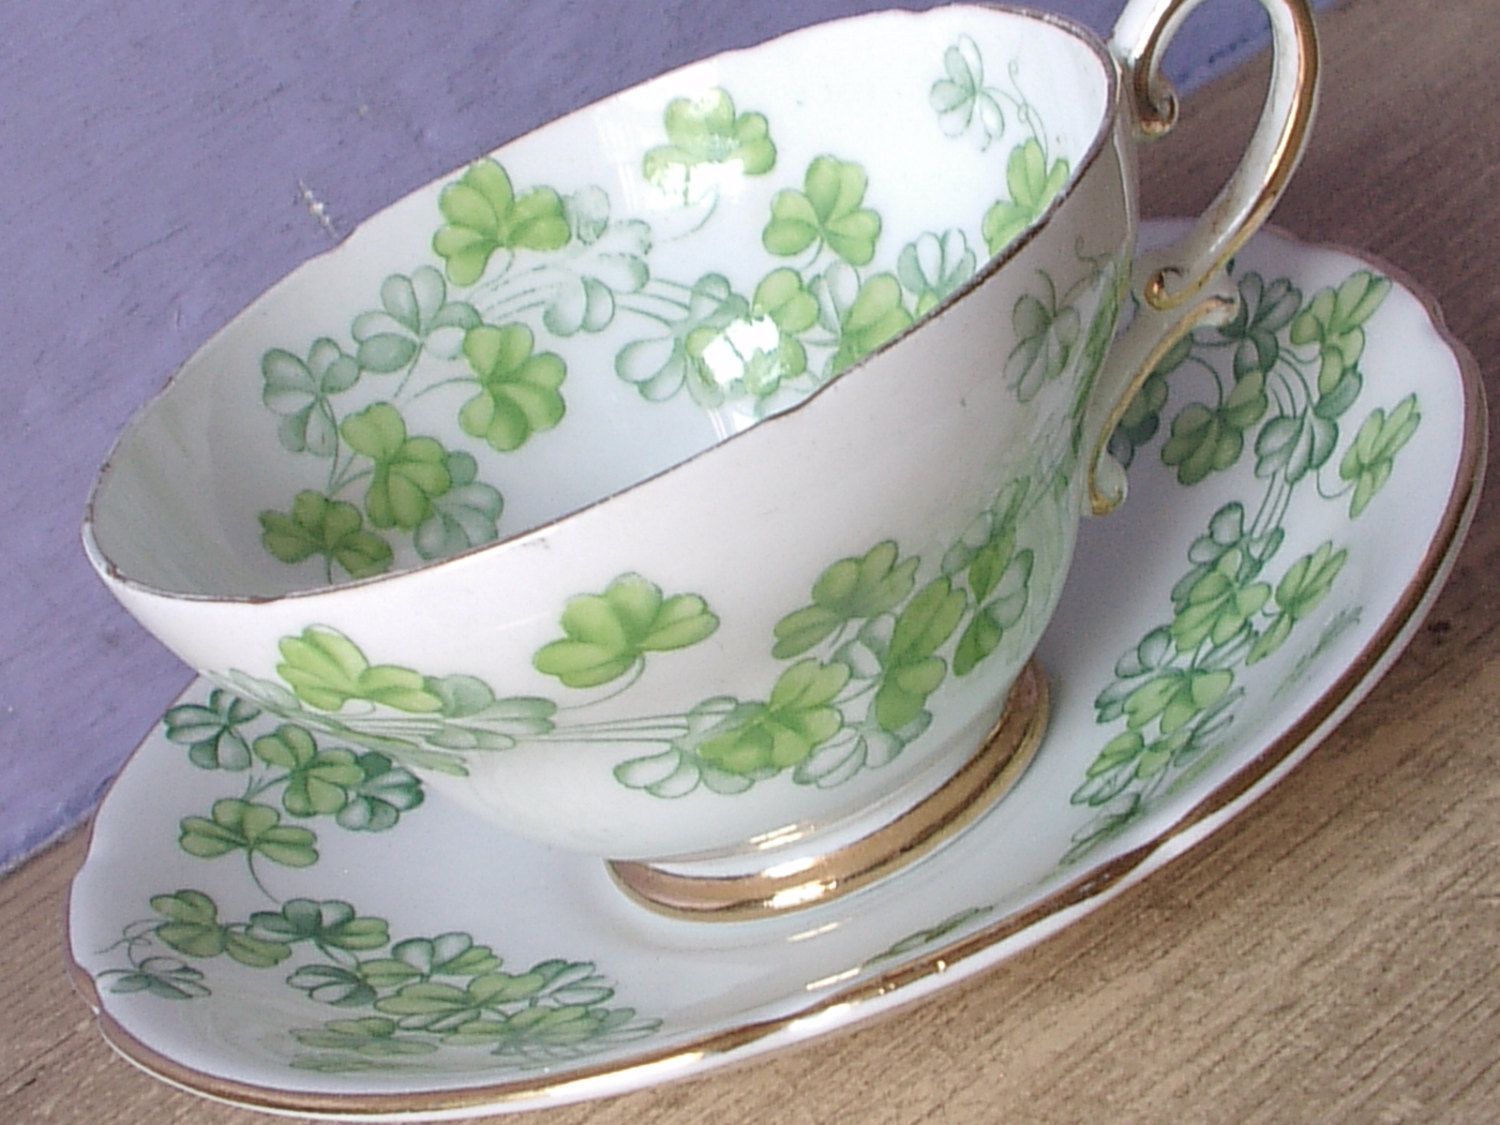 Vintage 1950's Irish tea cup and saucer, Stanley shamrock tea cup, Harp, Green and white bone china tea cup, English teacup, Antique teacup by ShoponSherman on Etsy